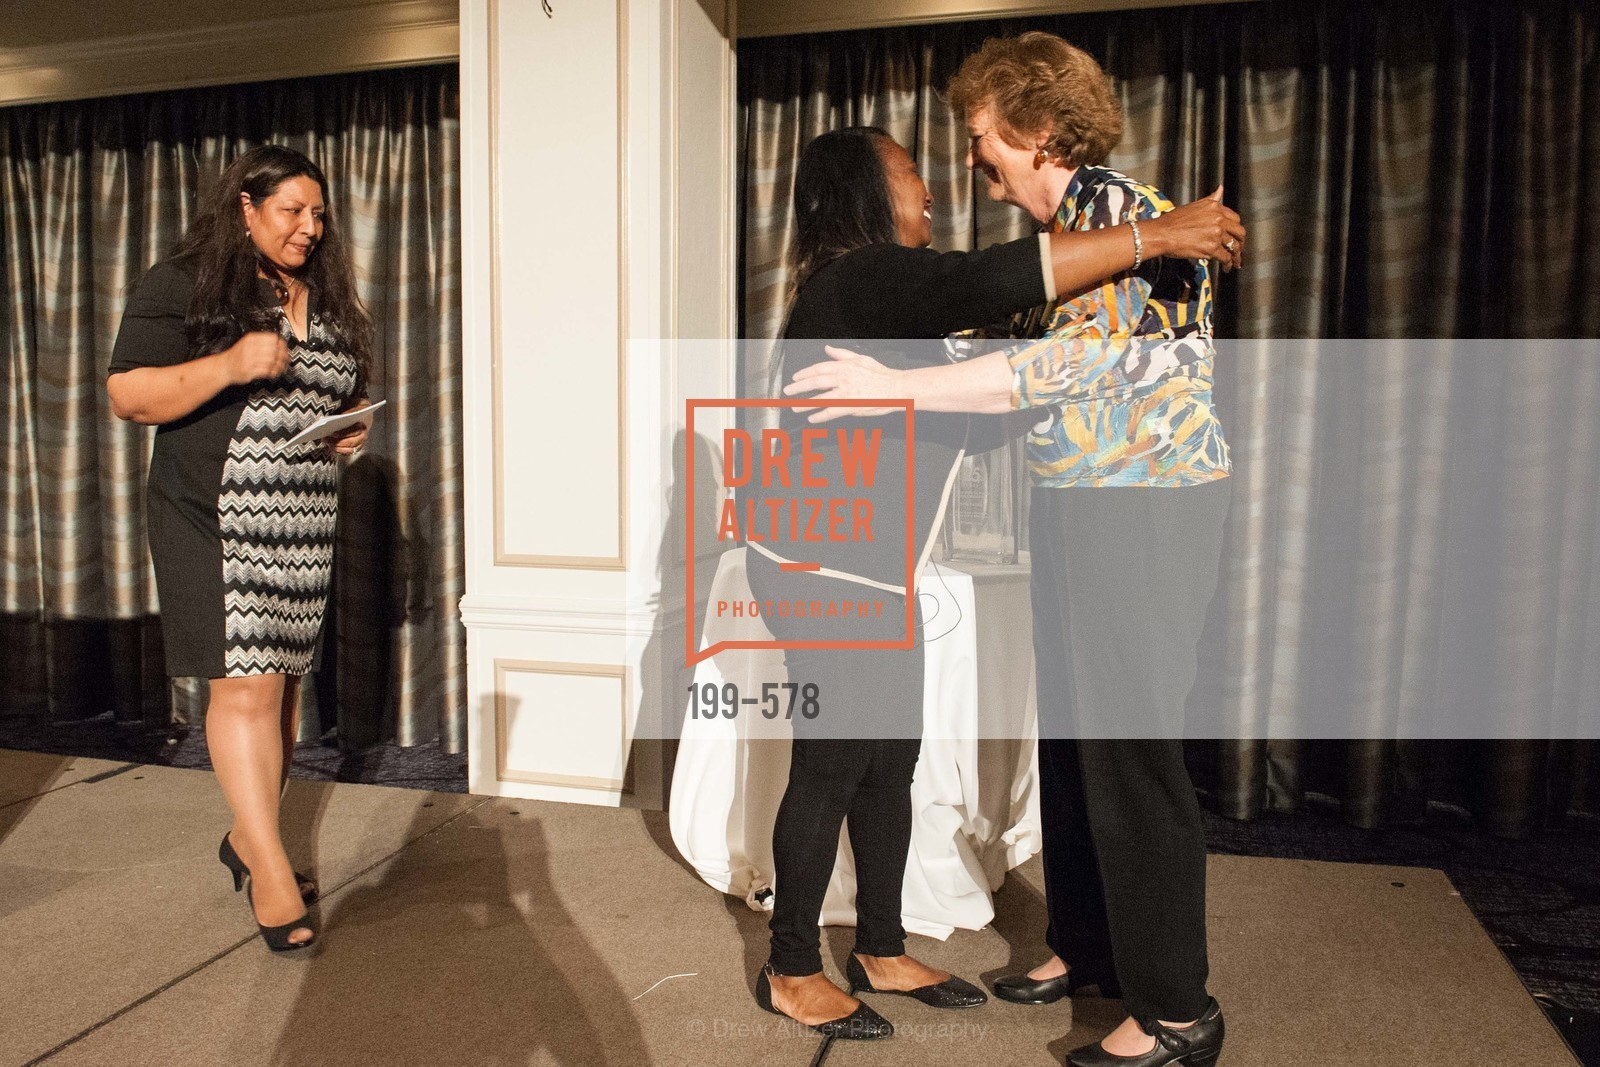 Sonya Batres, Carla Roberts, Martha Ryan, HOMELESS PRENATAL Annual Luncheon 2014, US, September 30th, 2014,Drew Altizer, Drew Altizer Photography, full-service agency, private events, San Francisco photographer, photographer california